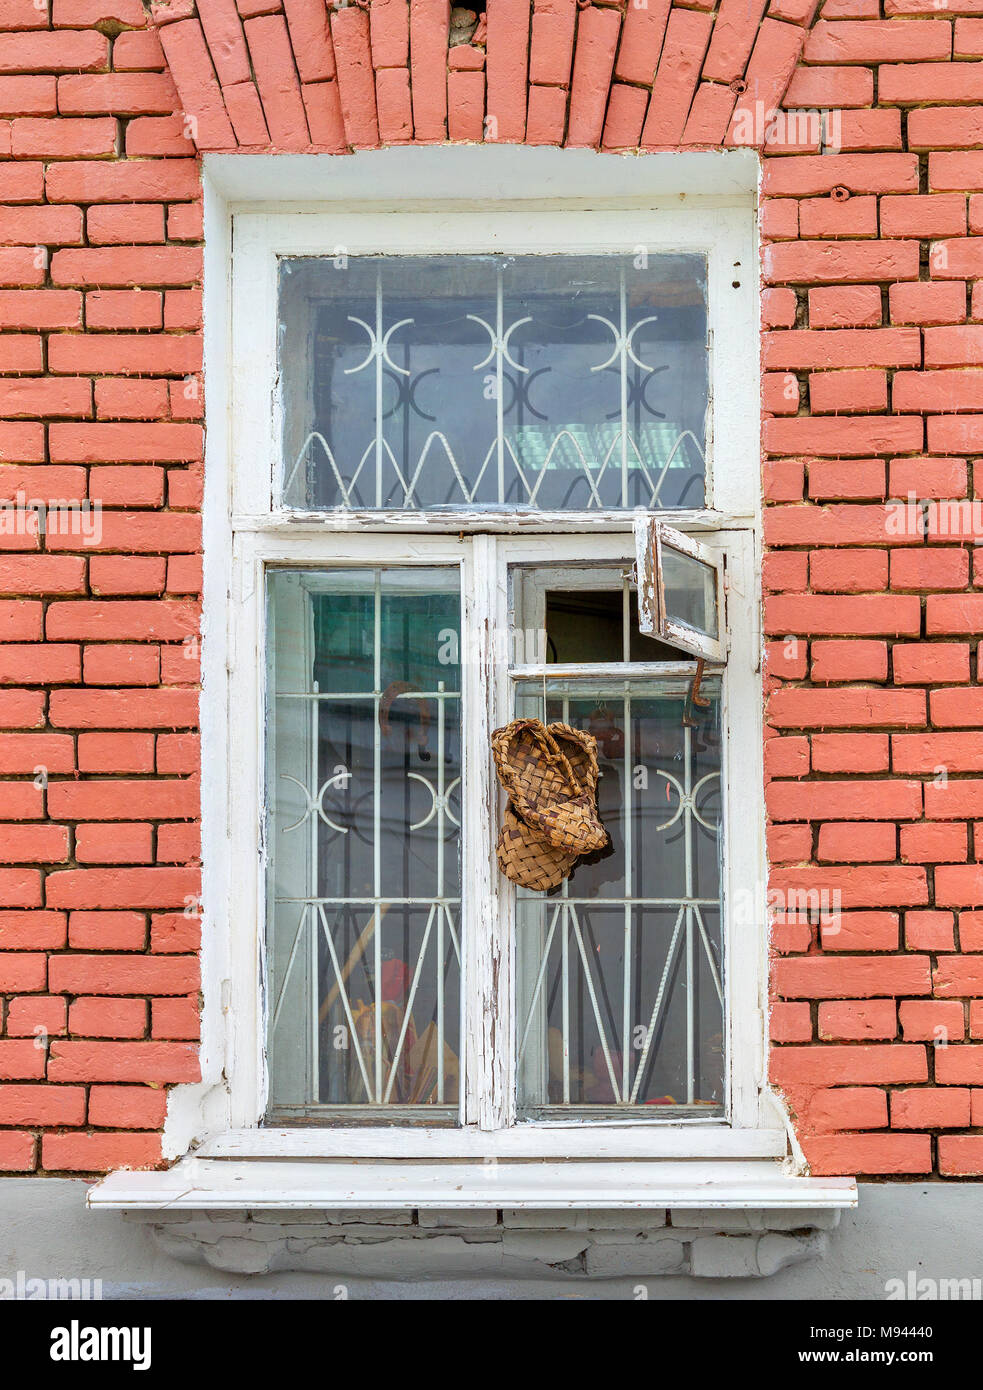 The bast shoes hang on the window. Vladimir. Russia - Stock Image